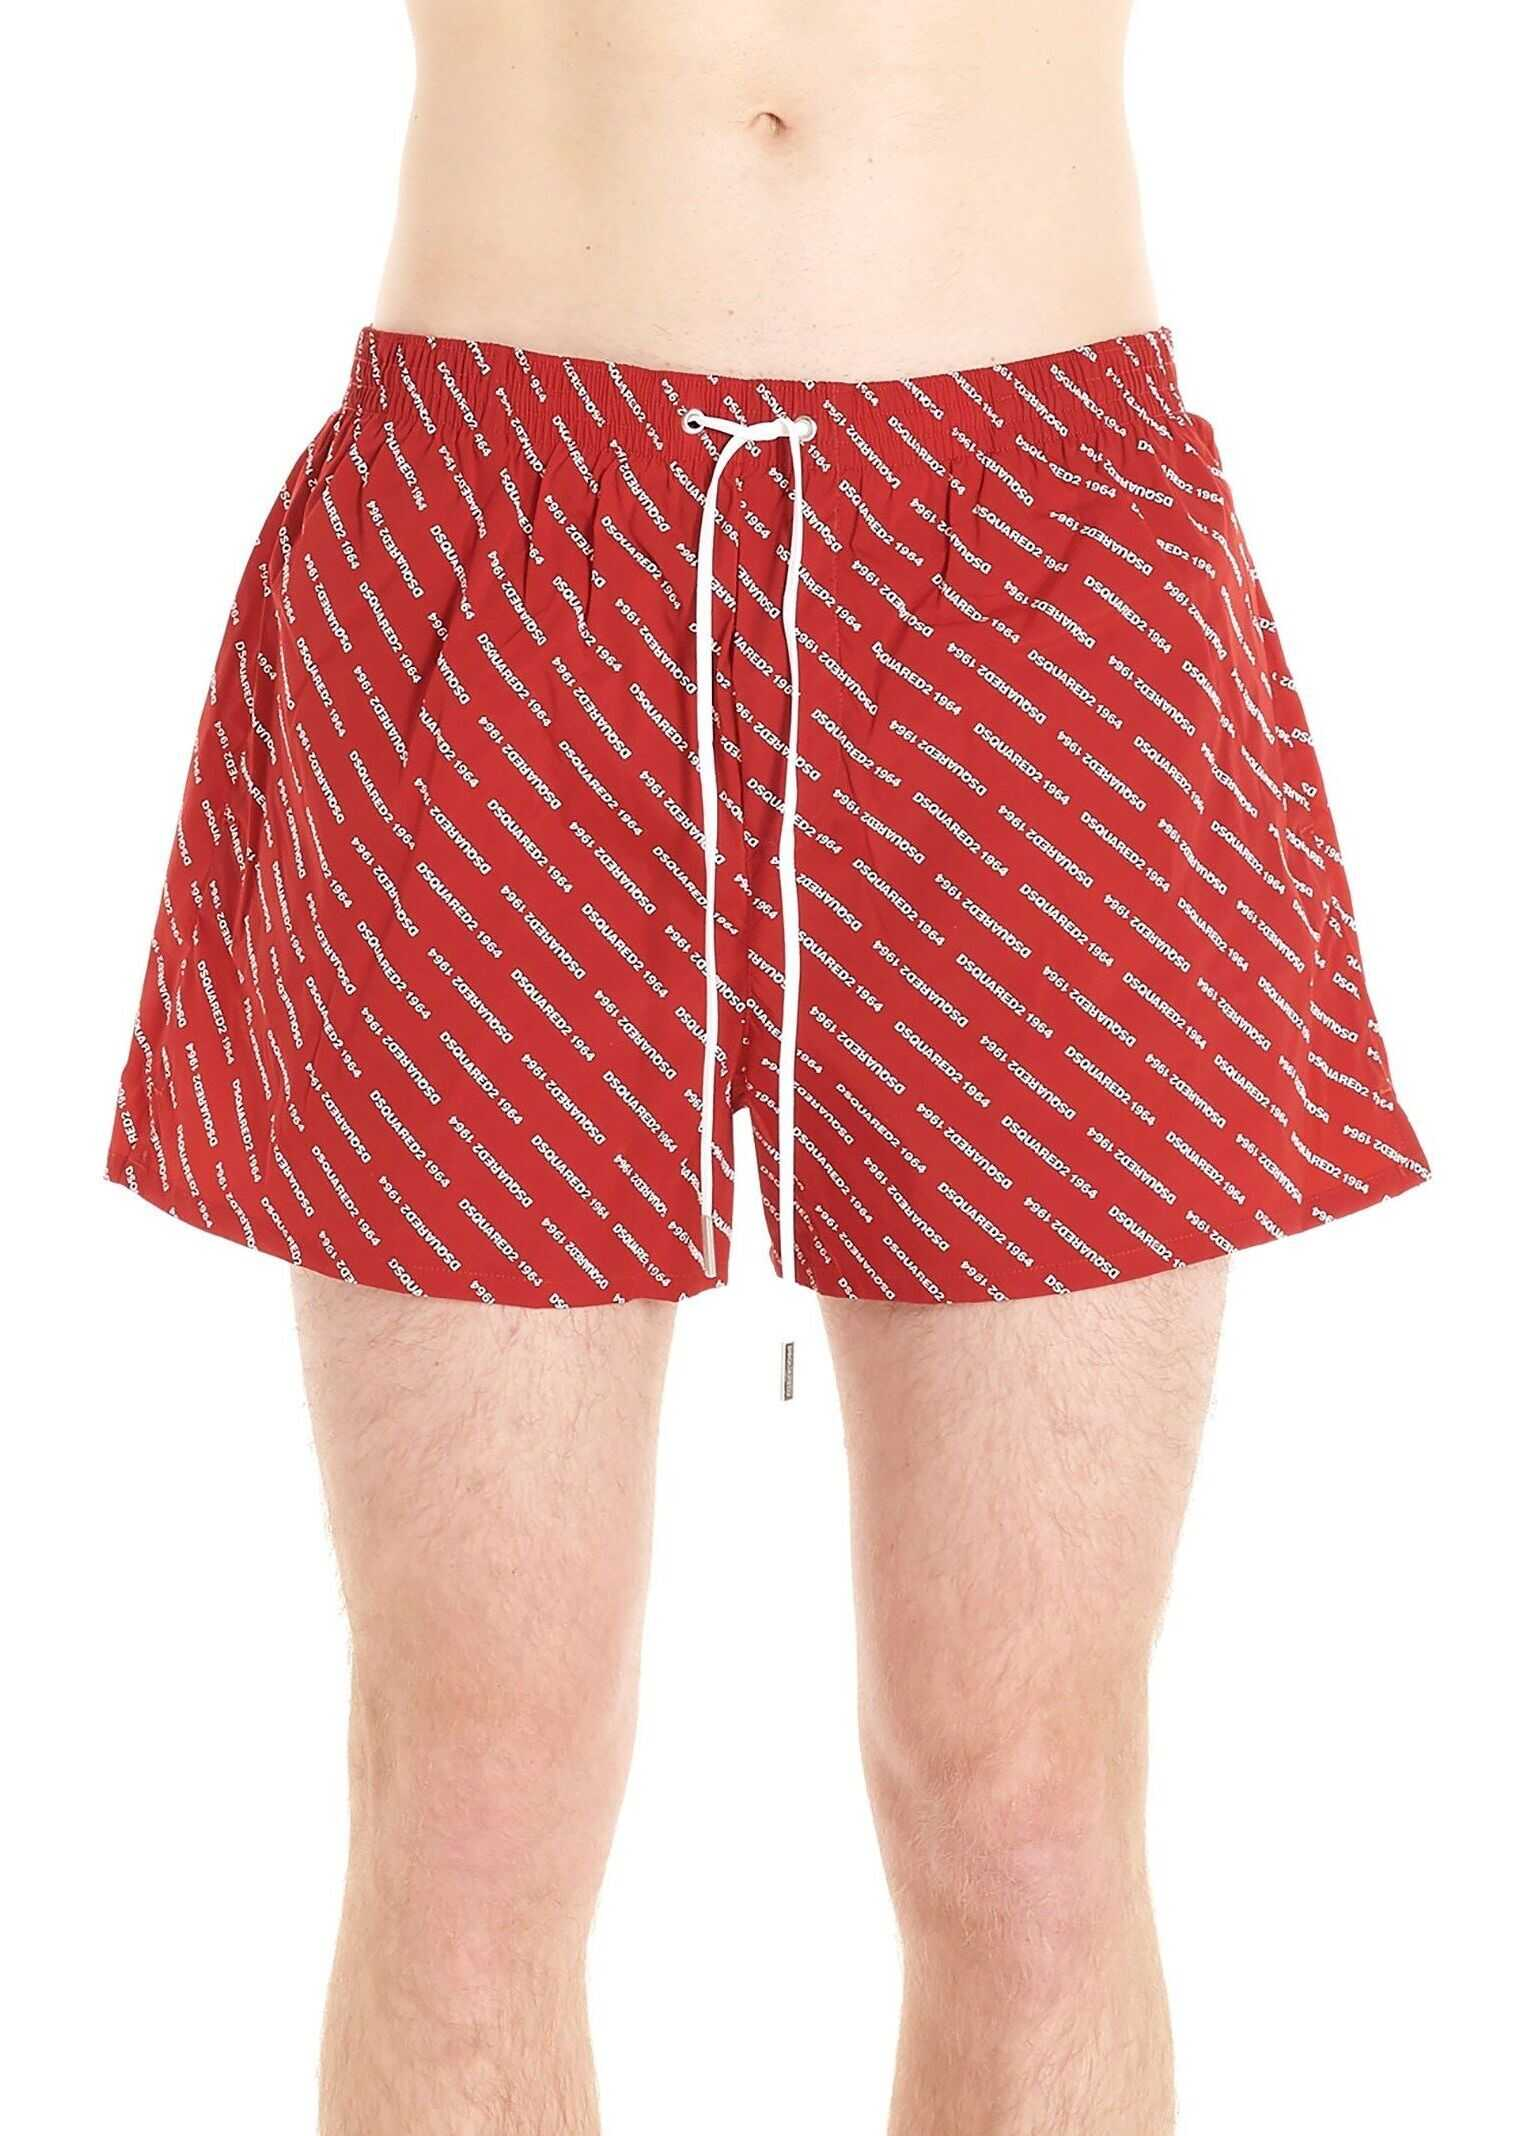 DSQUARED2 Polyamide Trunks RED